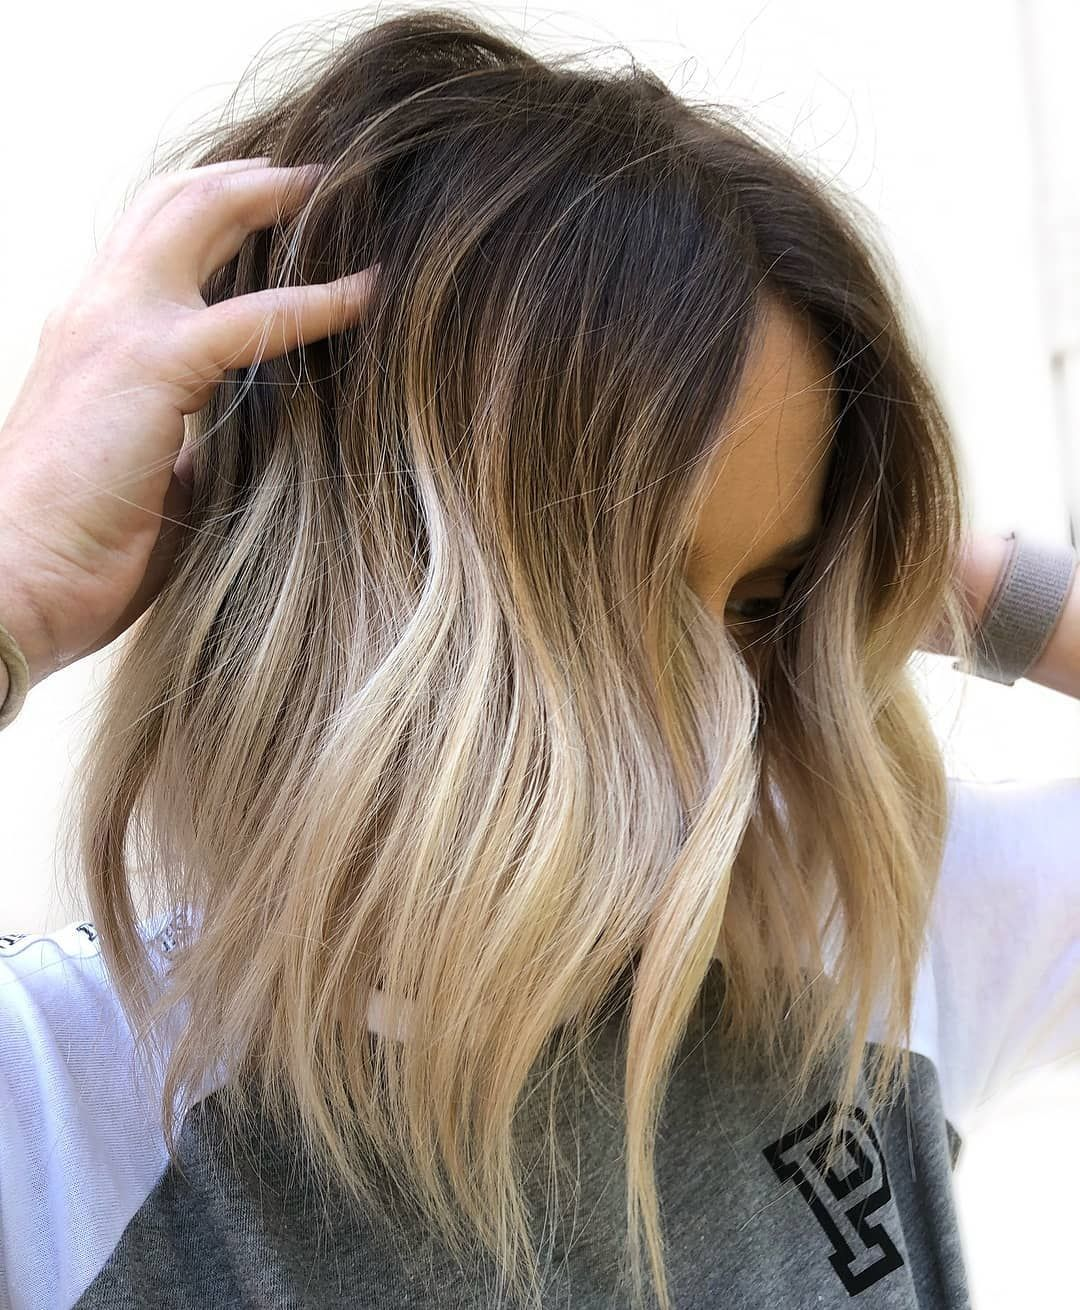 So Feeling This One By Hairbysharmichele Behindthechair Btchairbysharmichele Shadowr Blonde Ombre Short Hair Short Hair Styles Short Ombre Hair